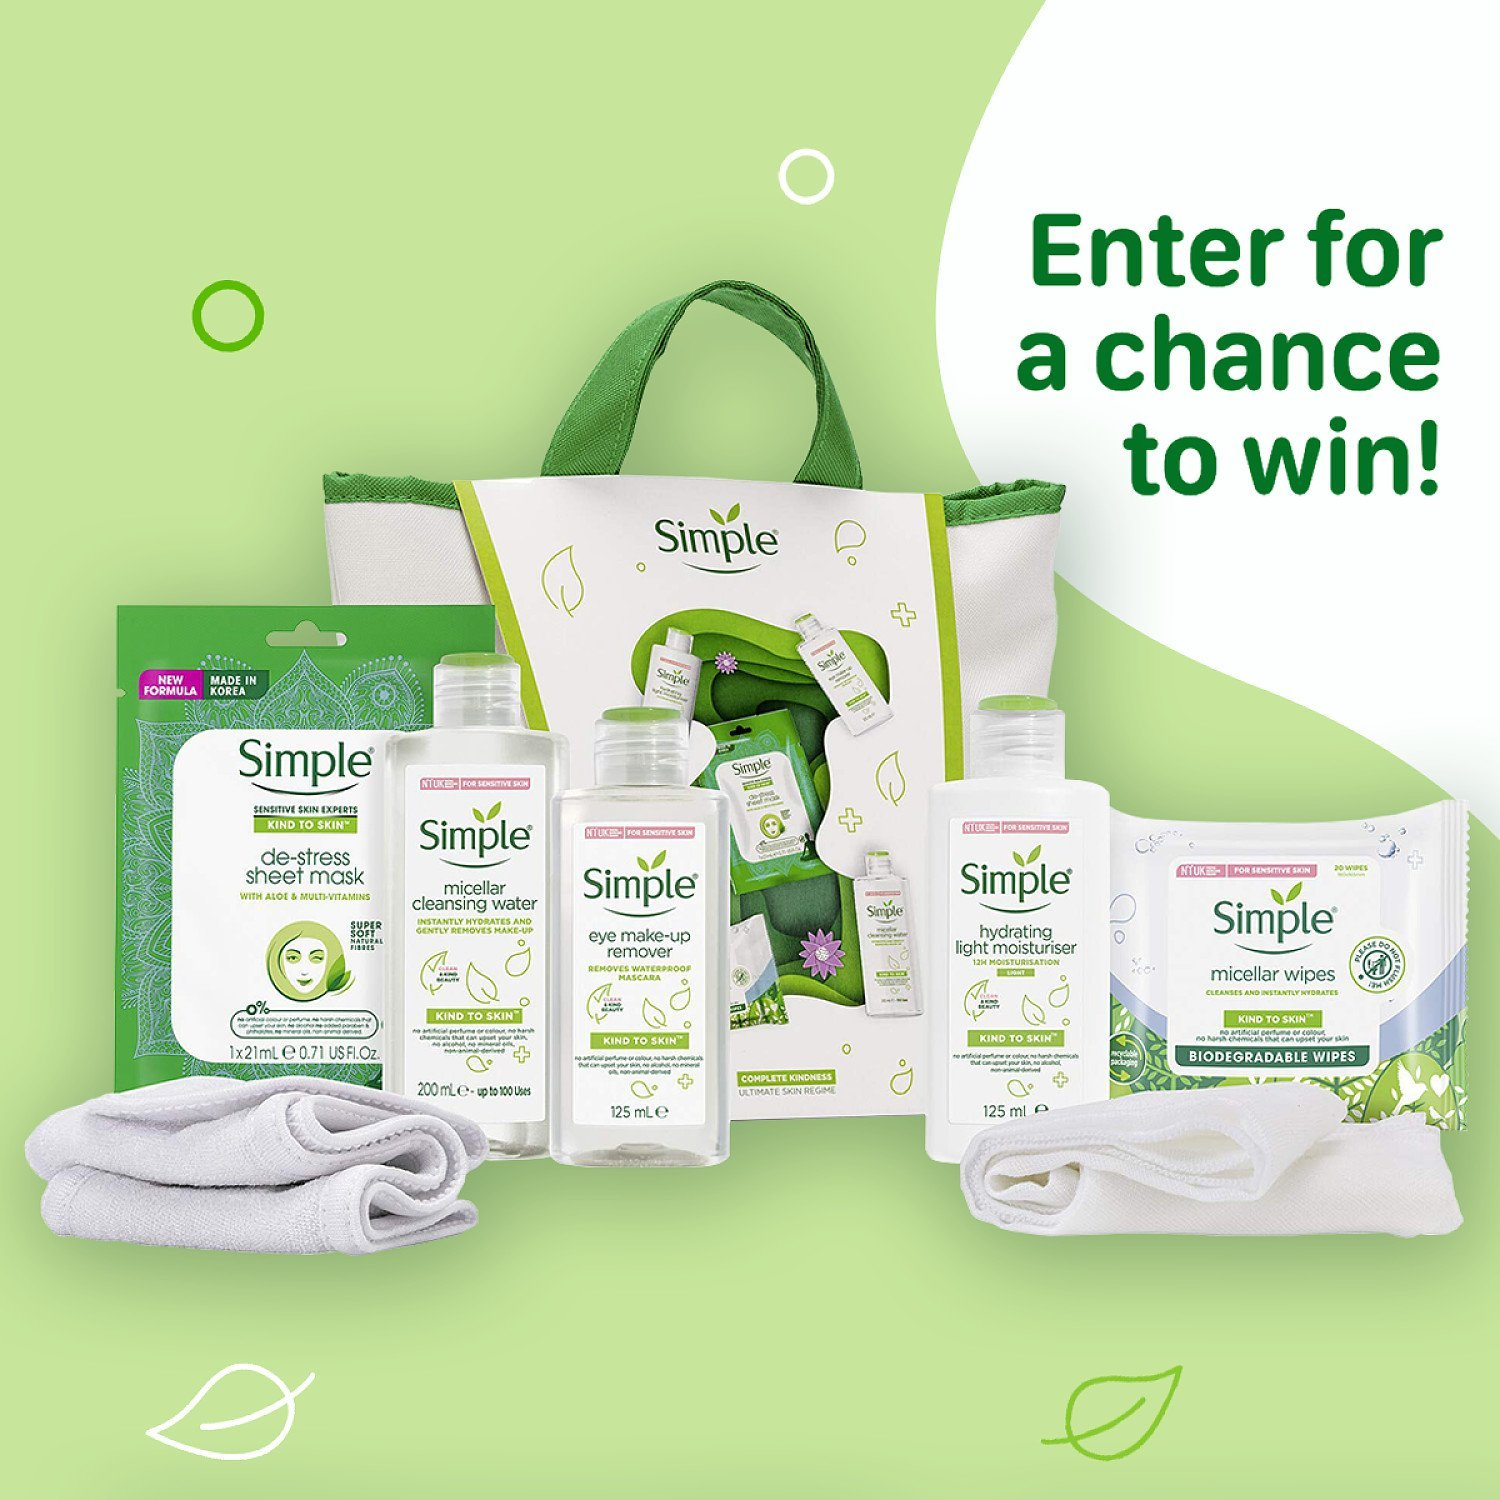 WIN this Simple Complete Kindness Gift Set